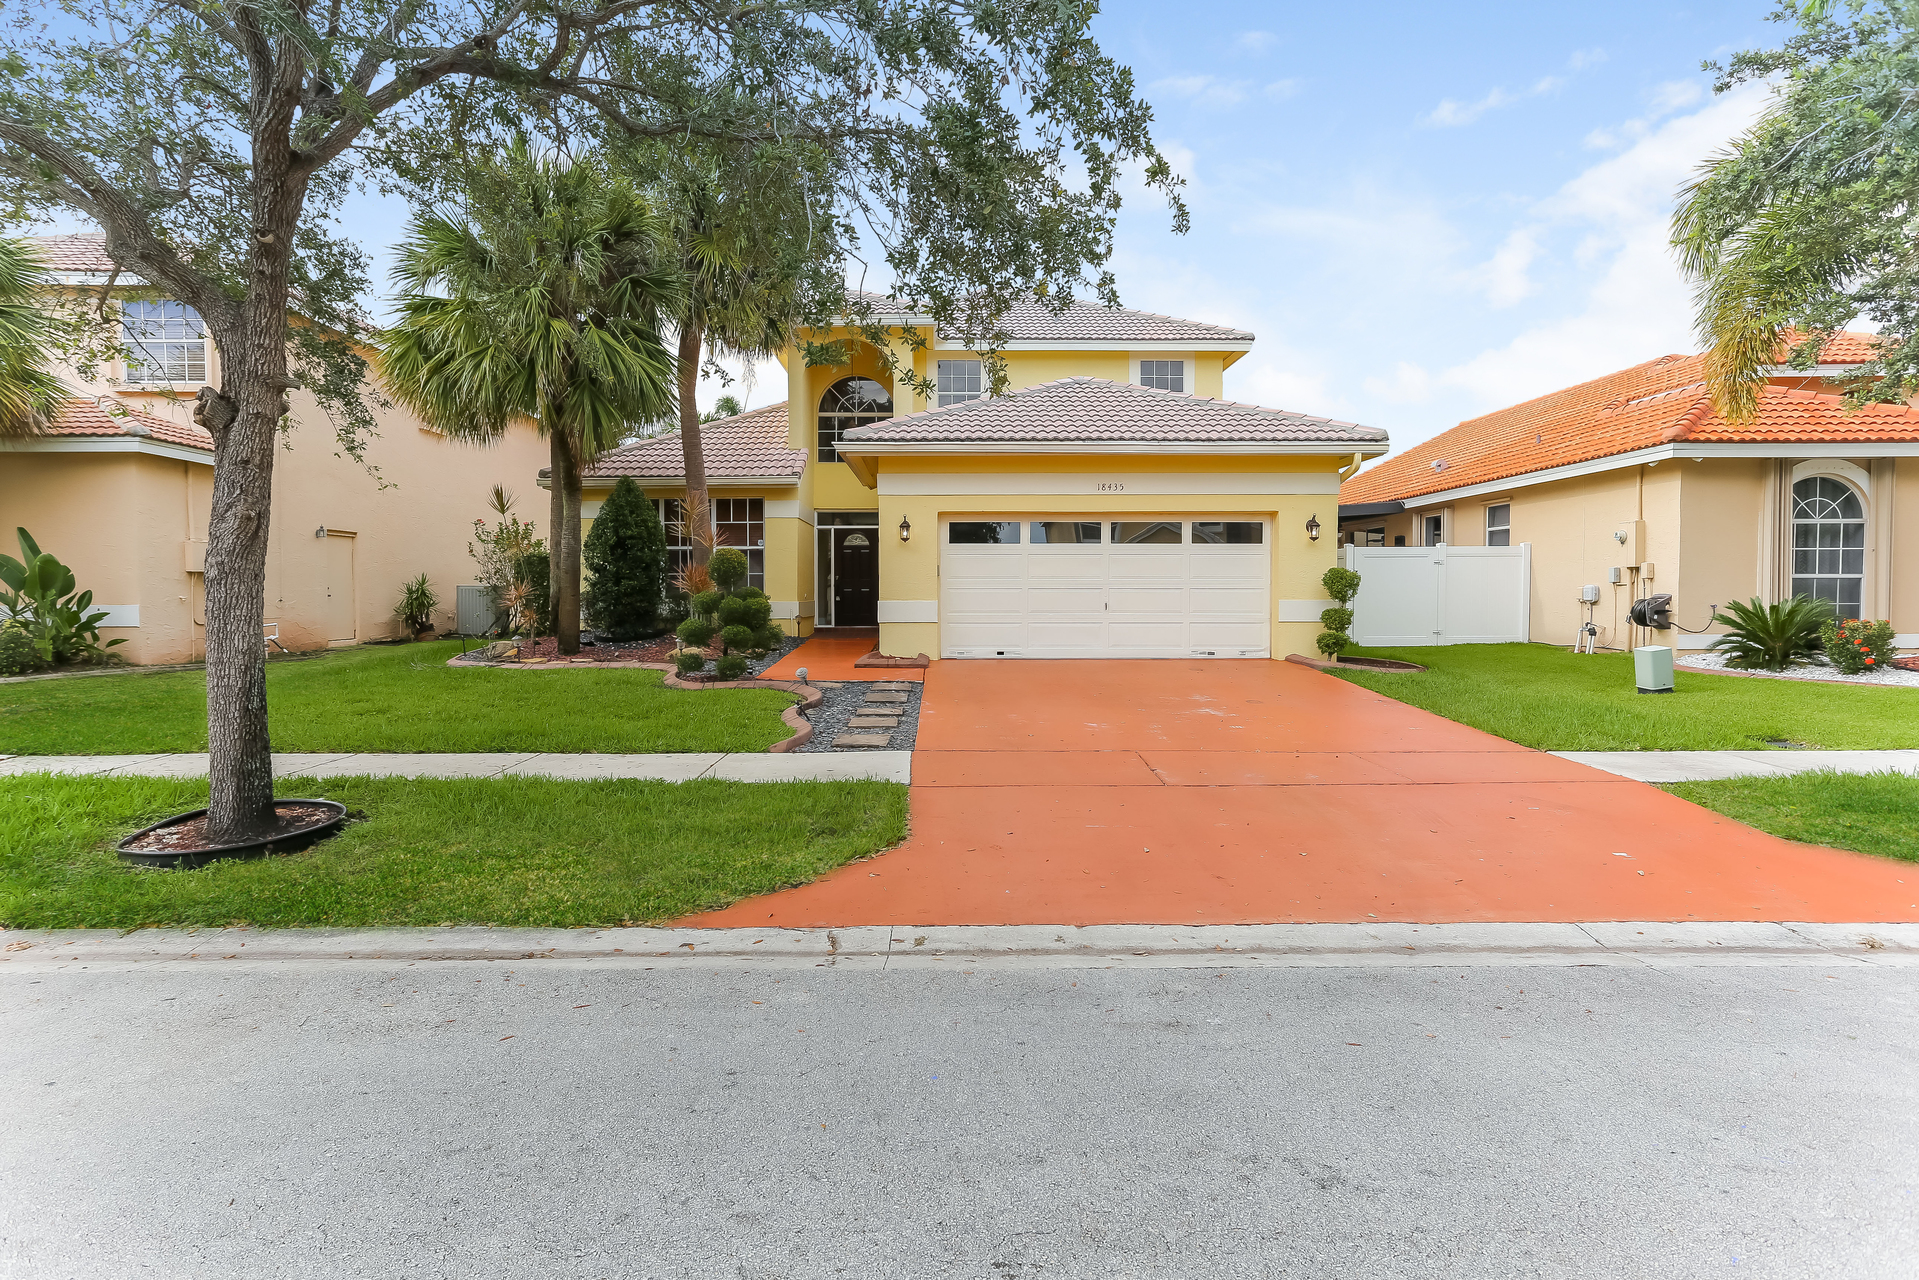 Photo of 18435 NW 12th St, Pembroke Pines, FL, 33029